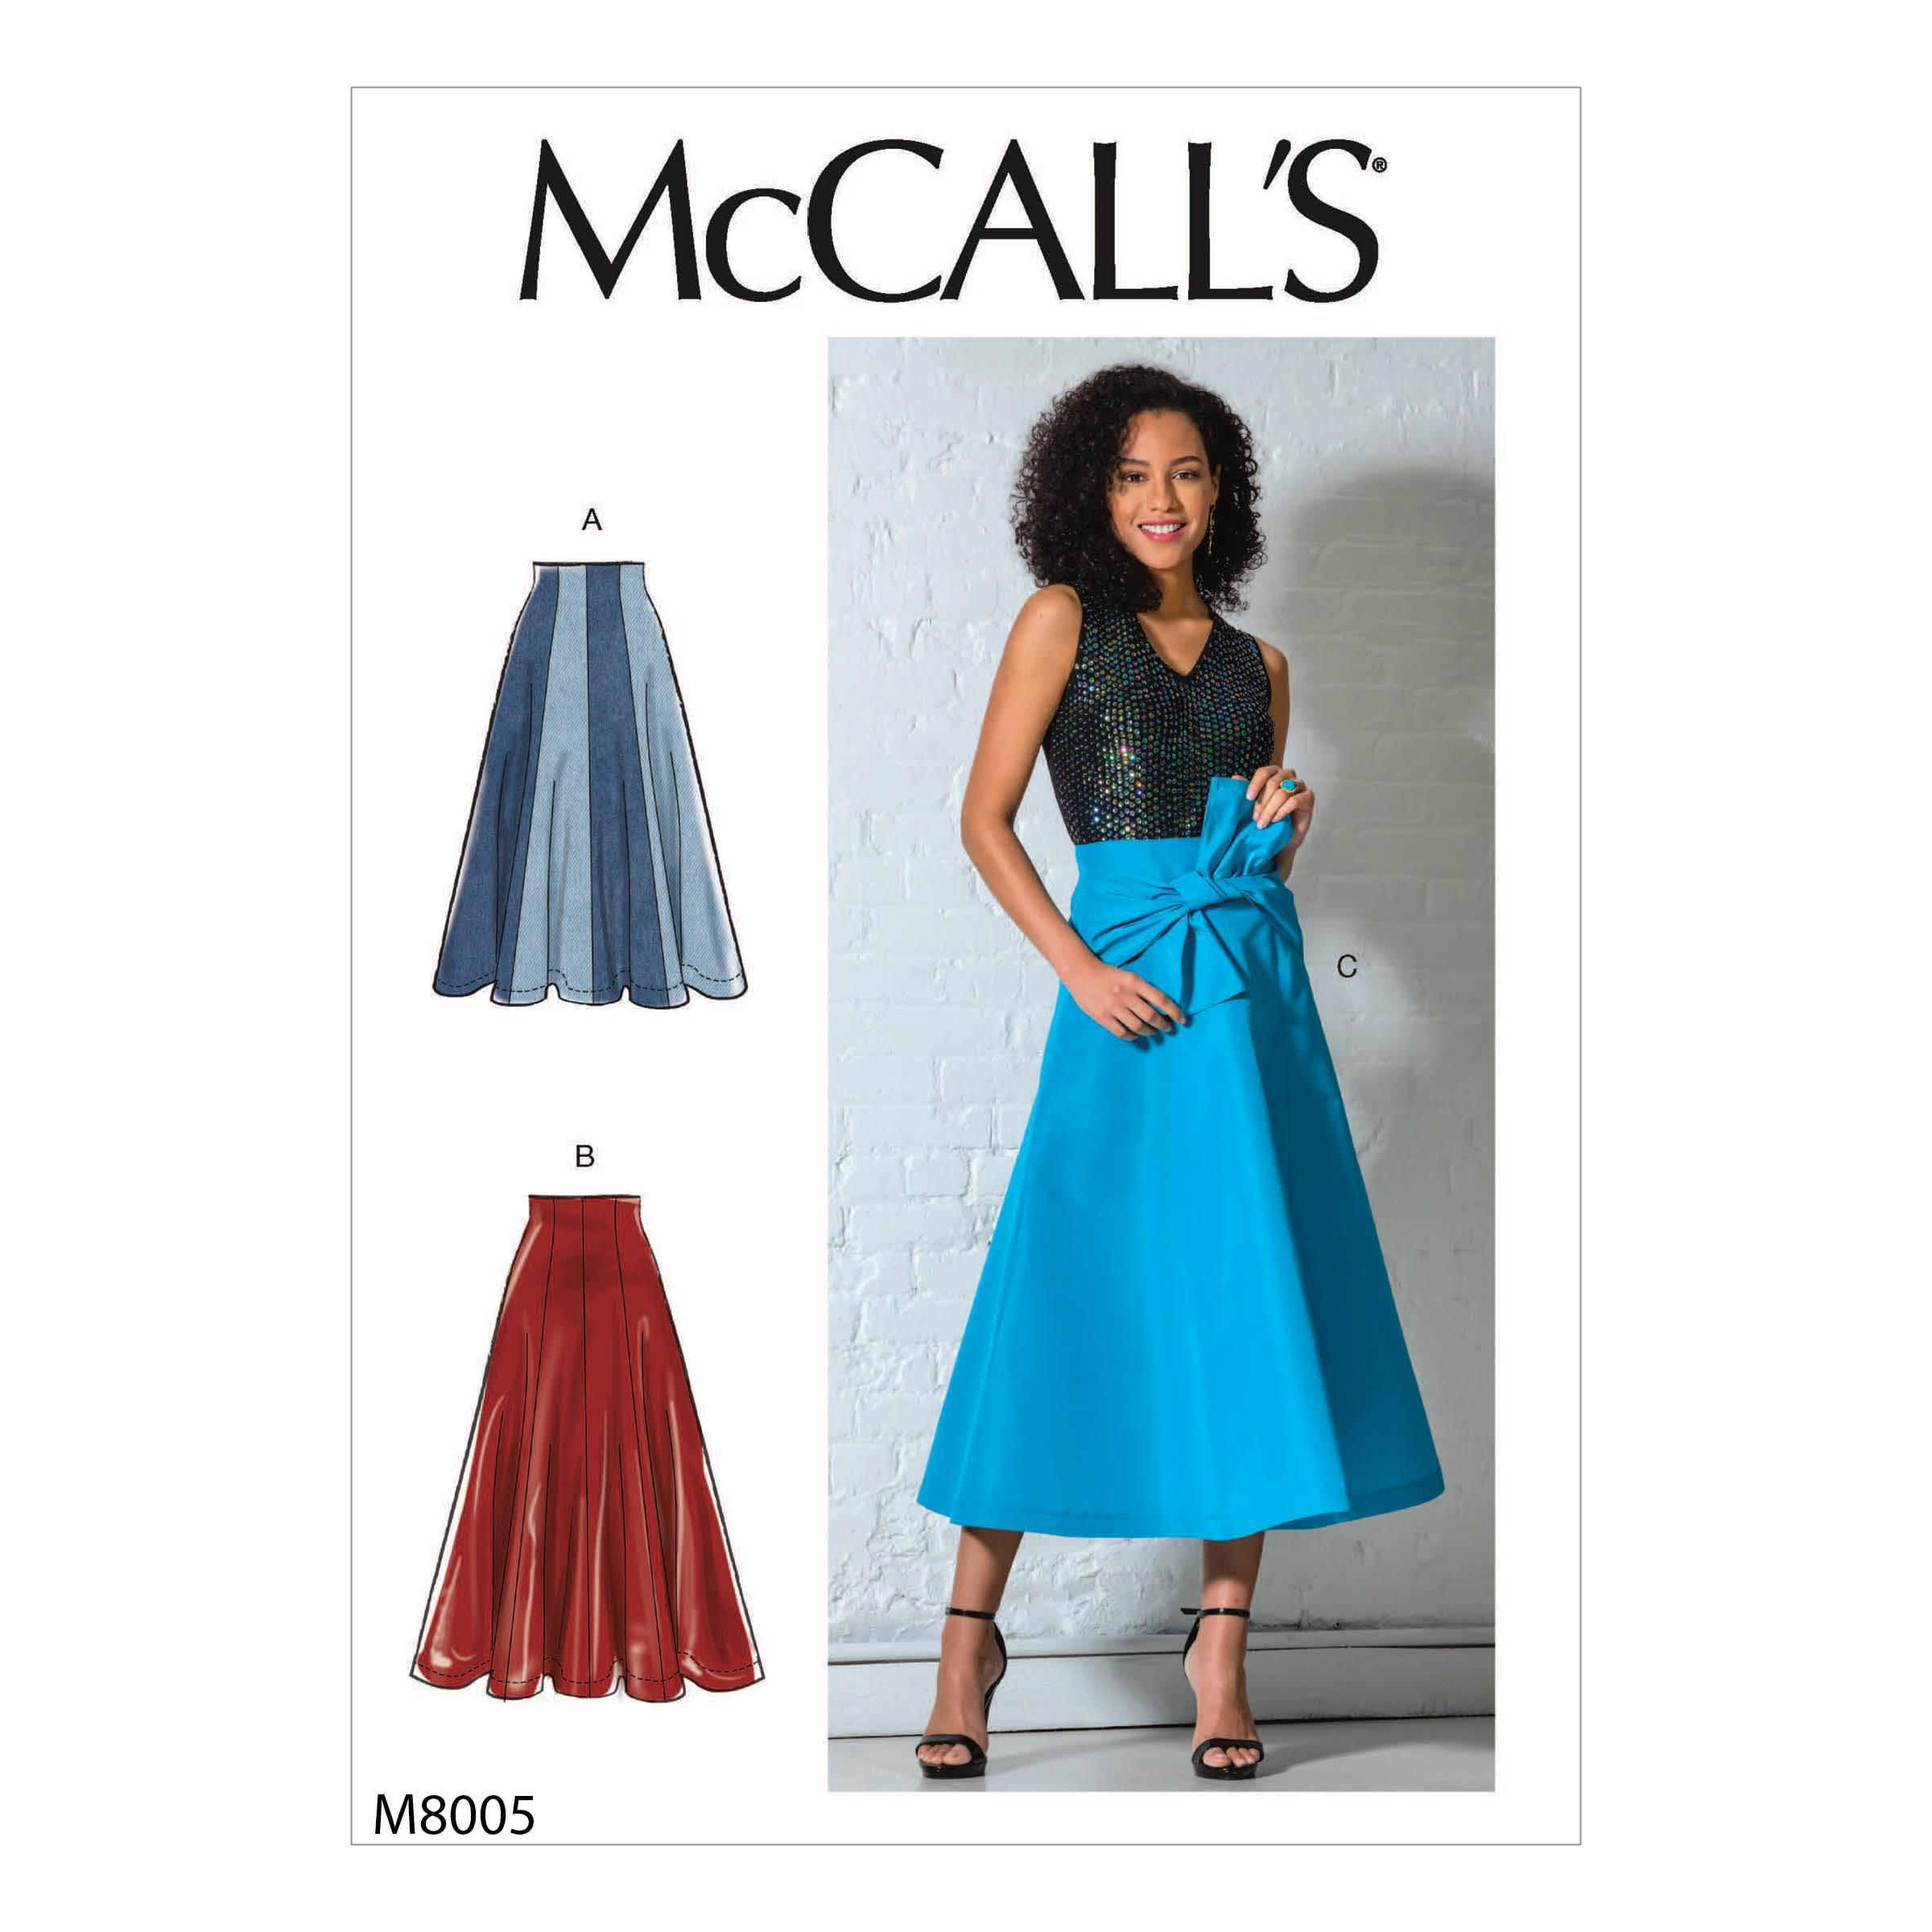 McCalls M8005 Misses Skirts, Misses Prom, Evening & Bridal